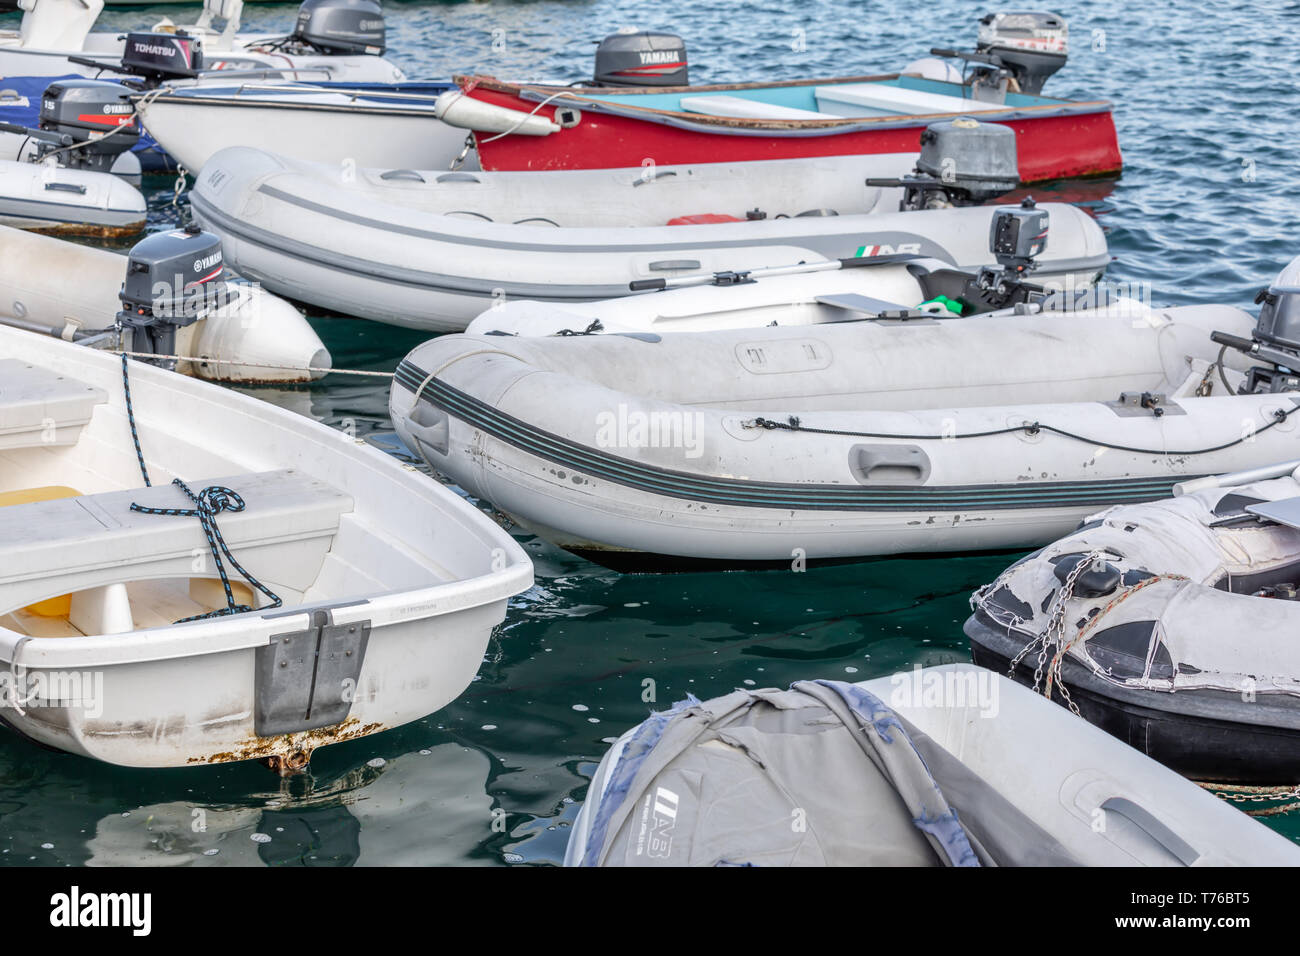 A group of dinghies tied together in Gustavia, St Barts - Stock Image